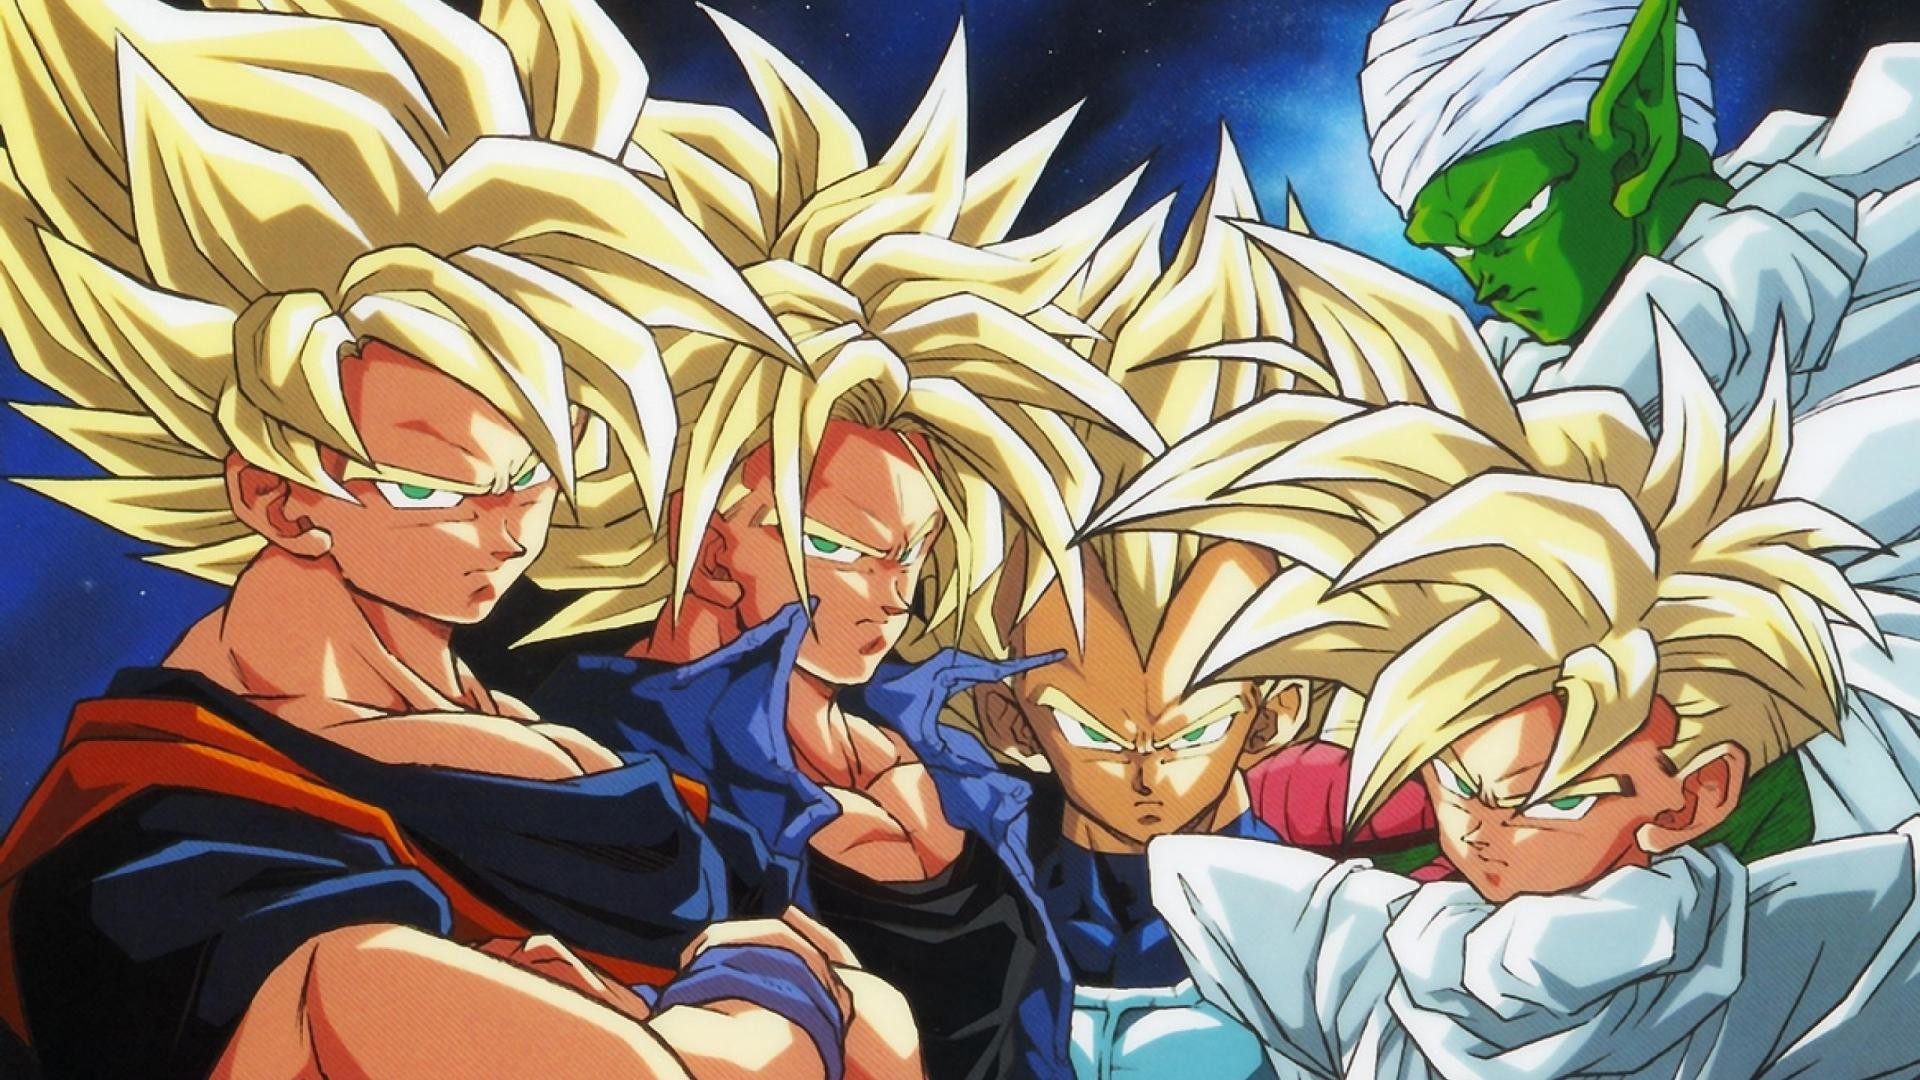 Dragon Ball Wallpaper Iphone HD Source Z Trunks 66 Images